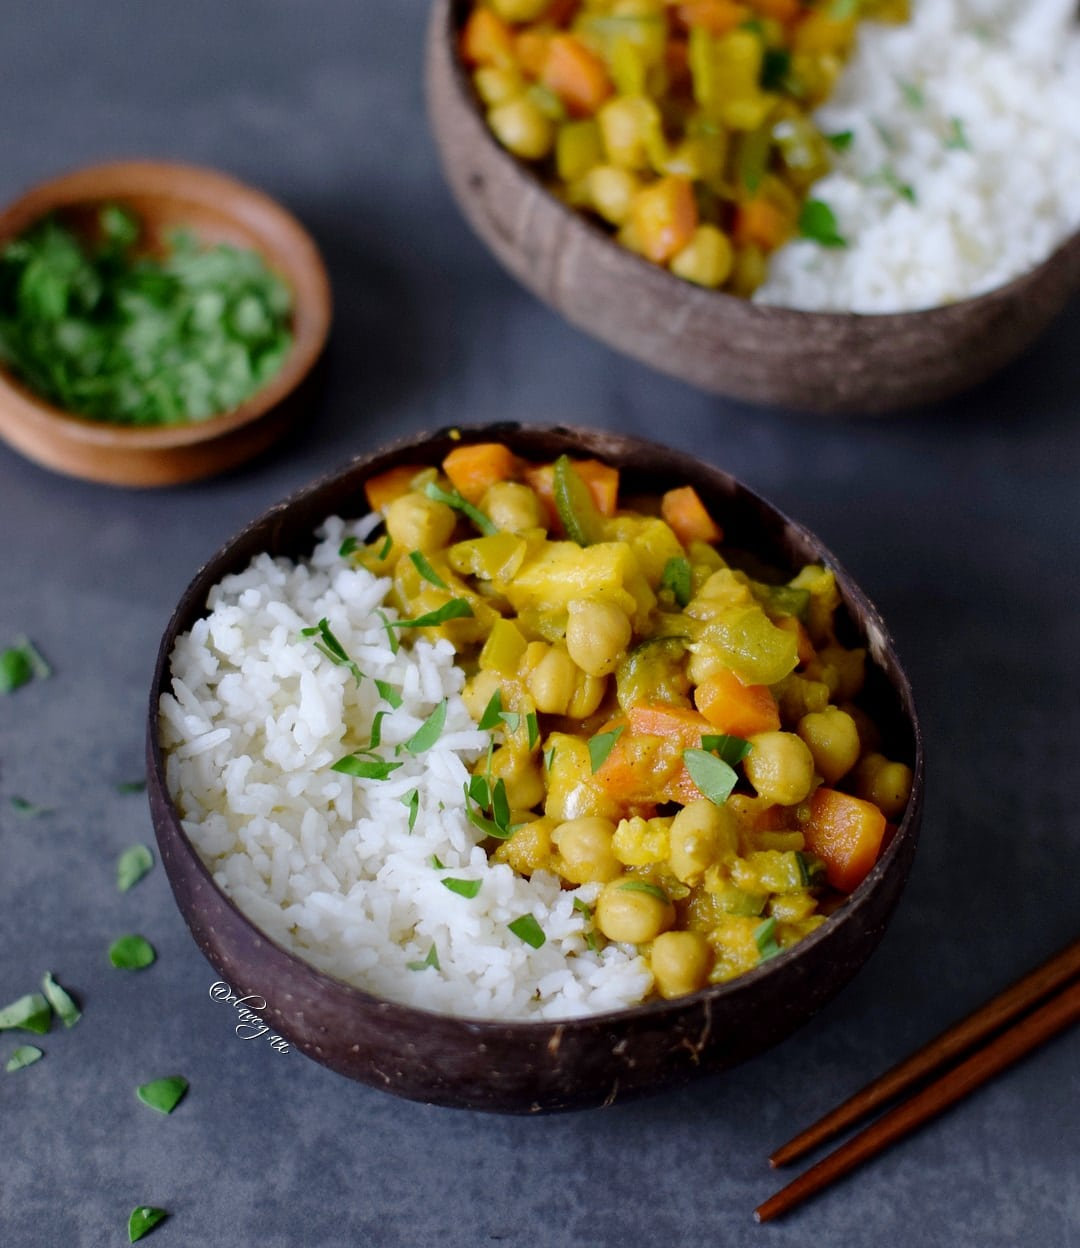 Veggie curry with fresh vegetables, pineapple and chickpeas. Healthy comfort food which is easy to make, vegan, gluten free, oil free and delicious